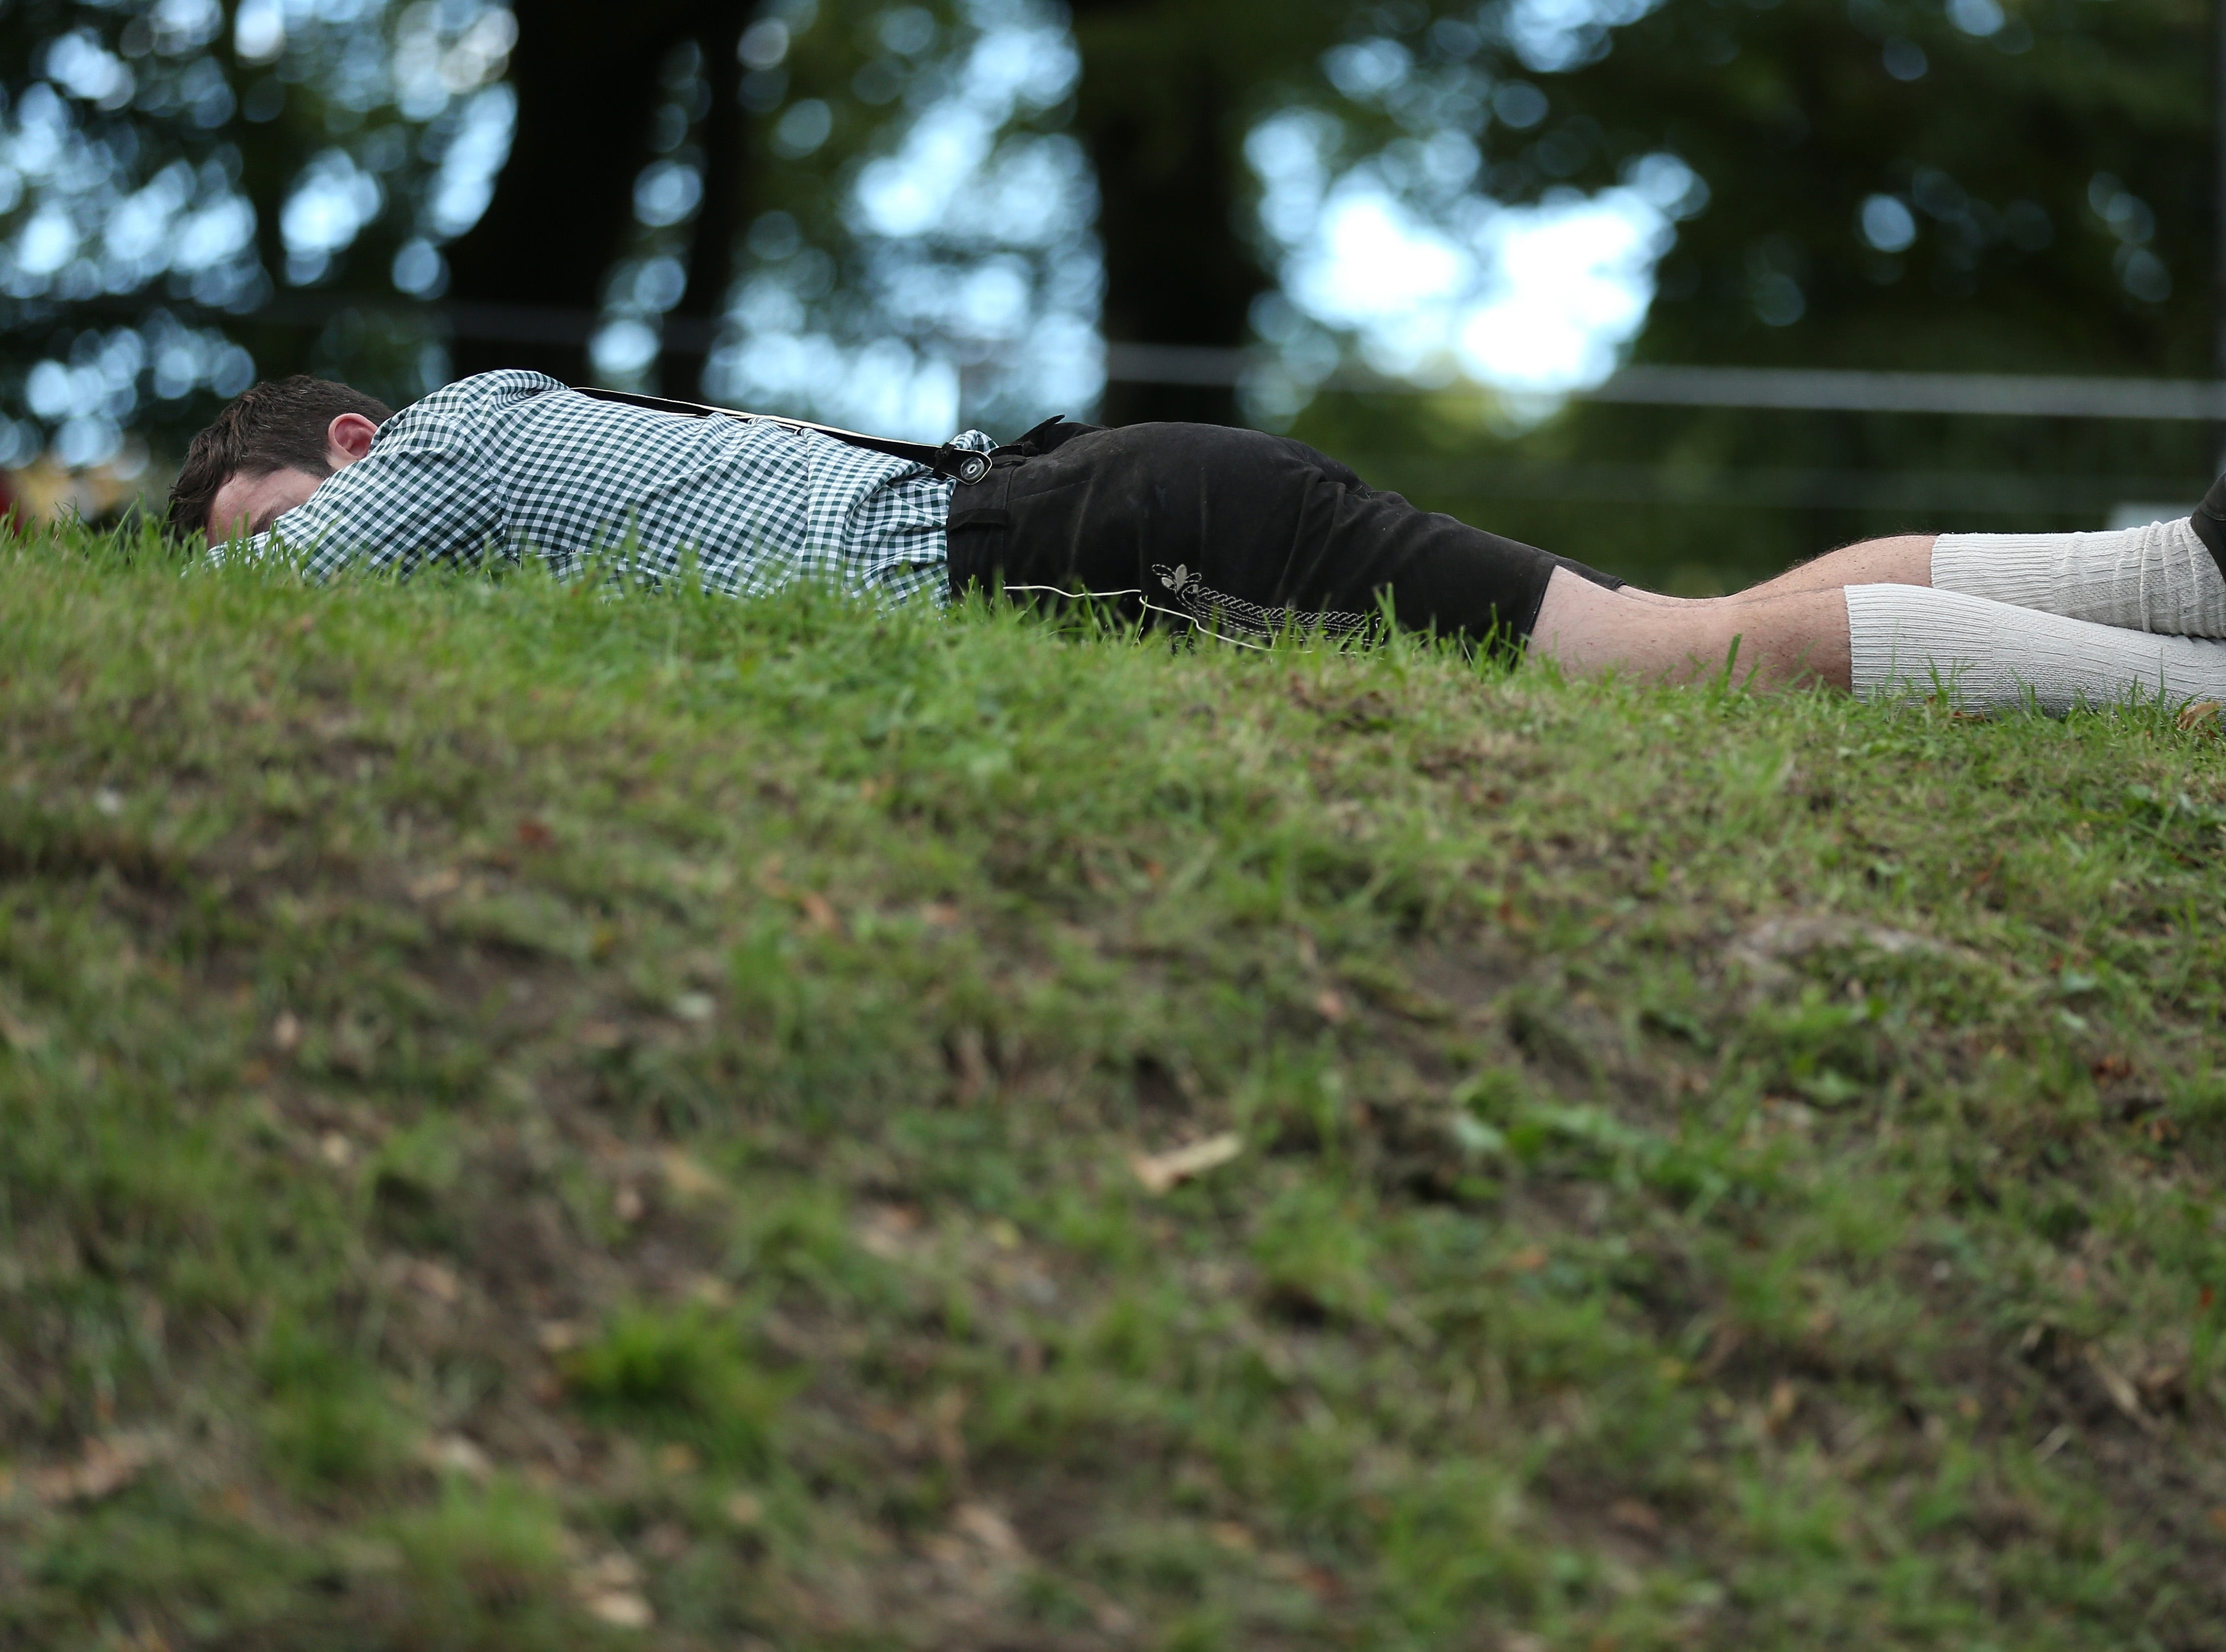 =A reveler lies sleeping near beer tents on the second day of the 2018 Oktoberfest beer festival on Sept. 23, 2018 in Munich, Germany. Oktoberfest typically draws over six million visitors.